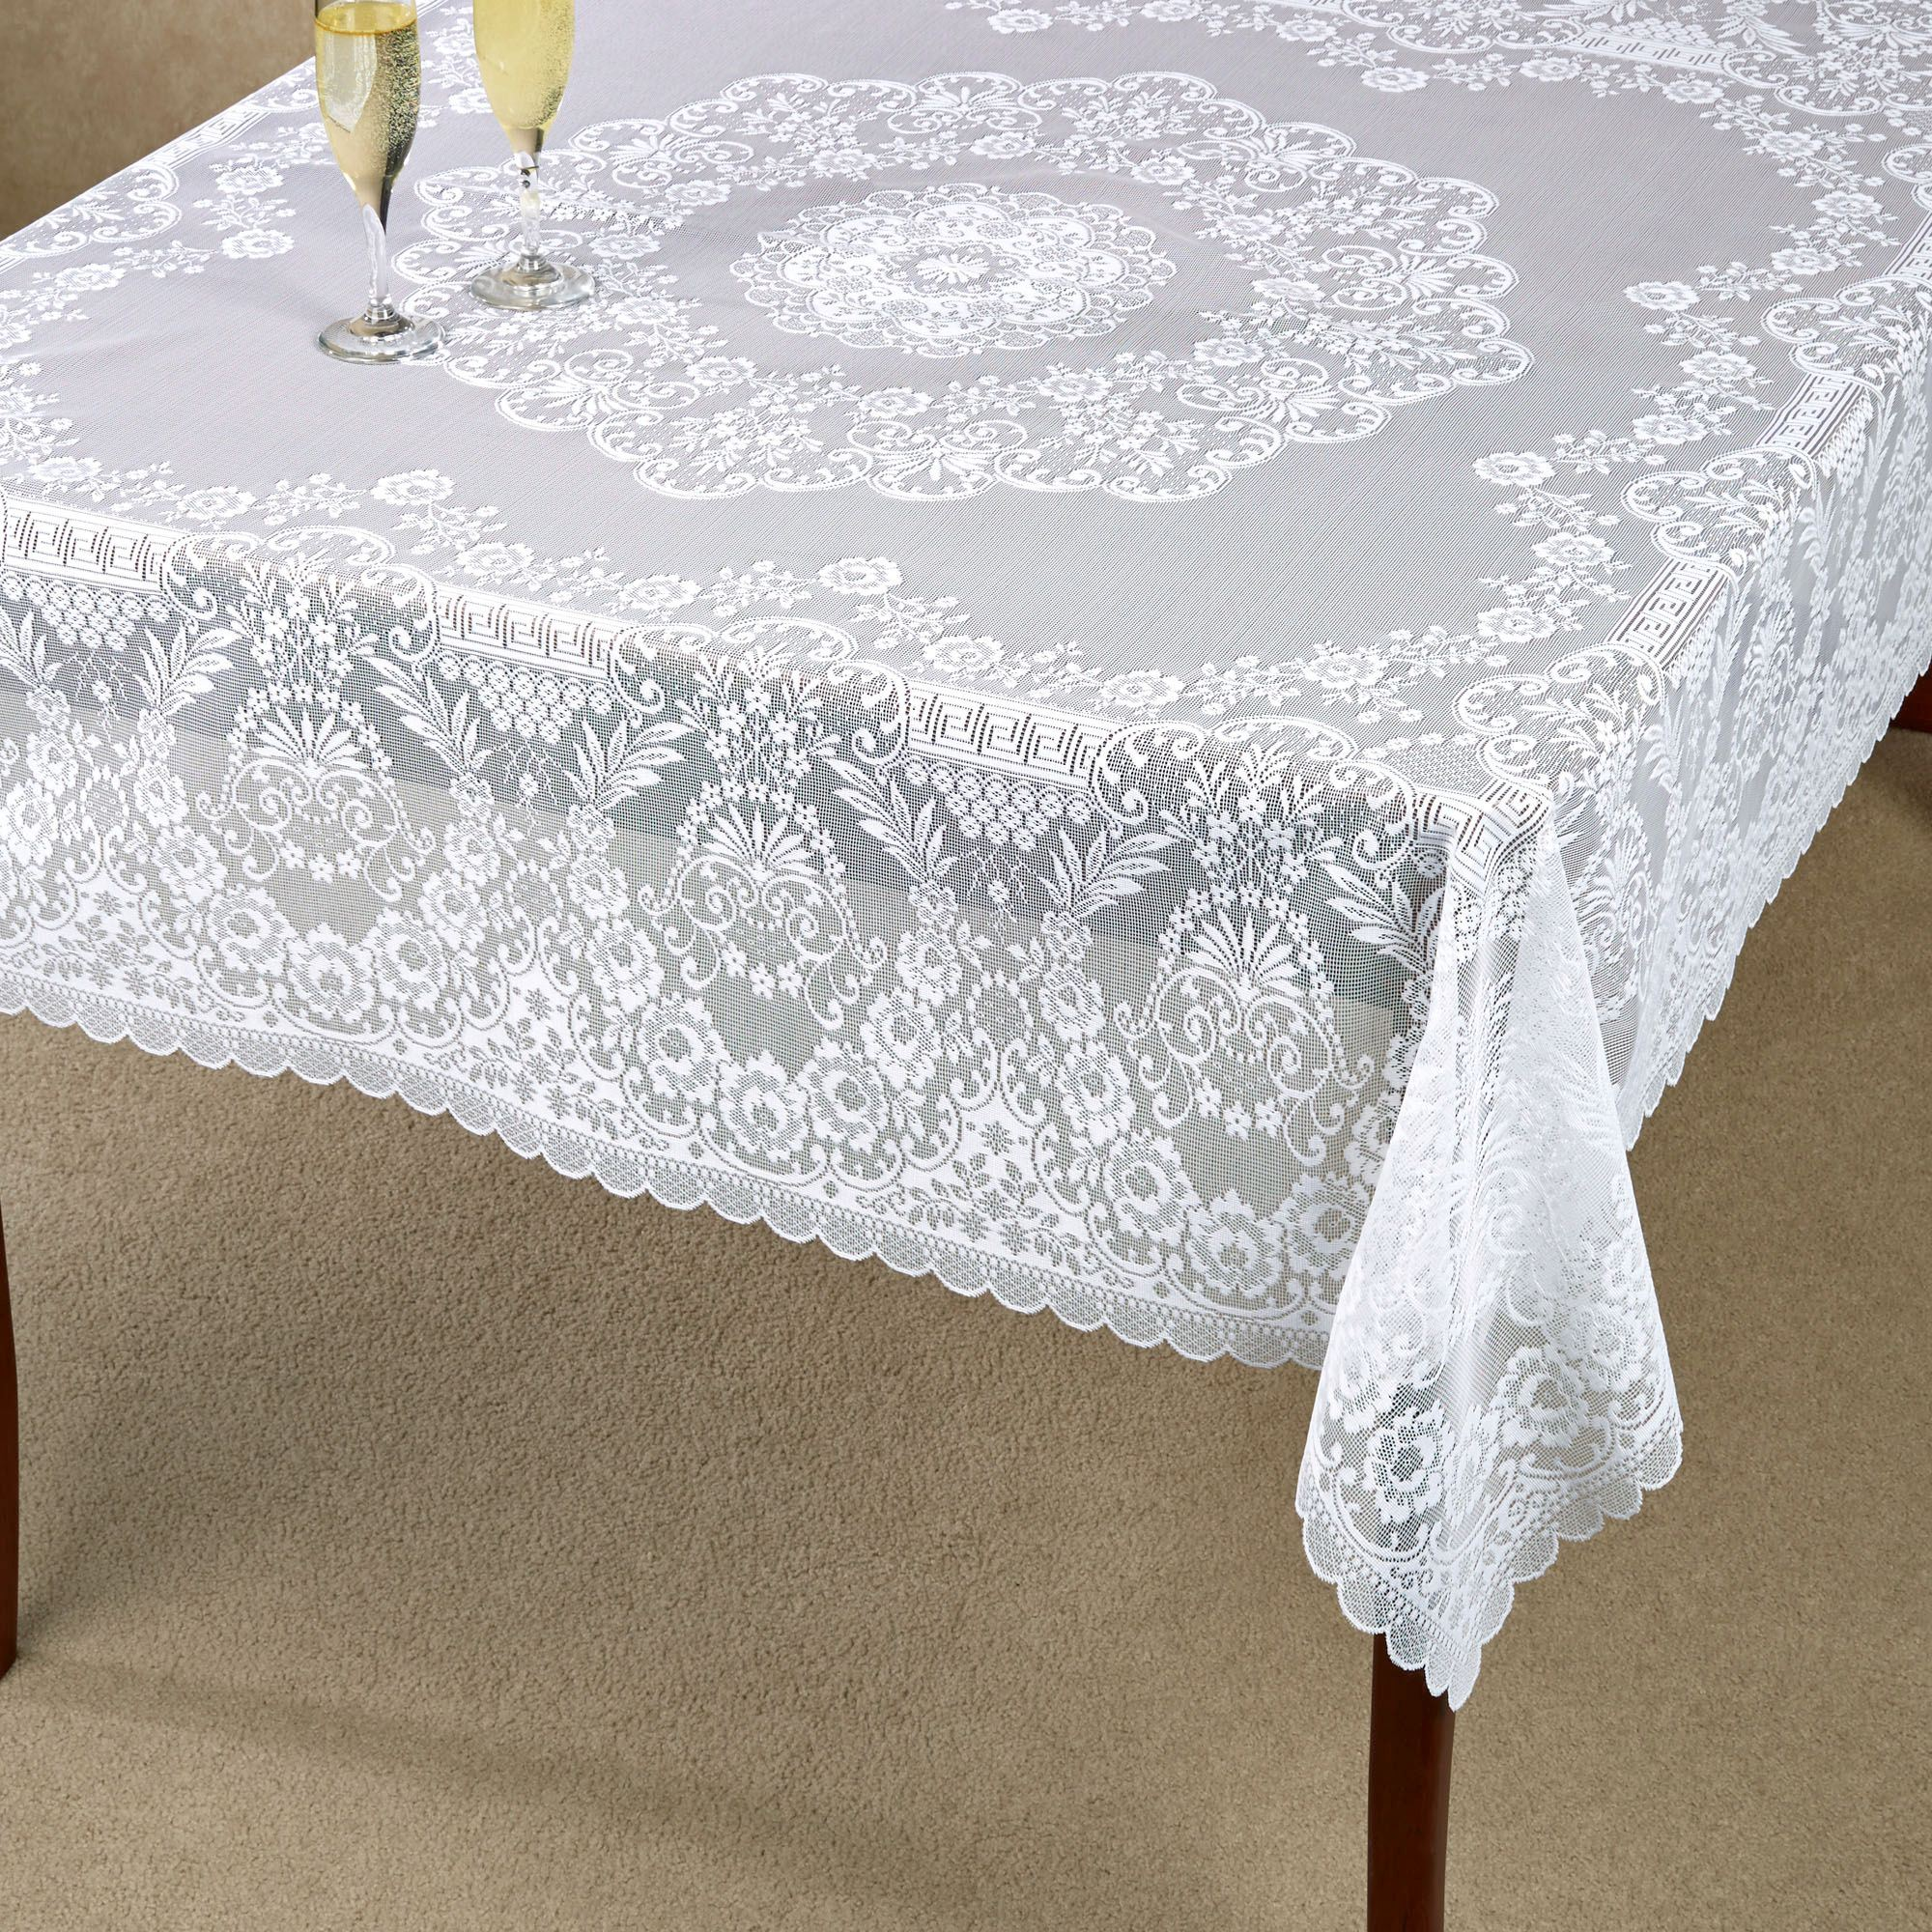 Superb Scottish lace tablecloth round circular cream or white Stunning Tablecloth beautiful design cotton 68